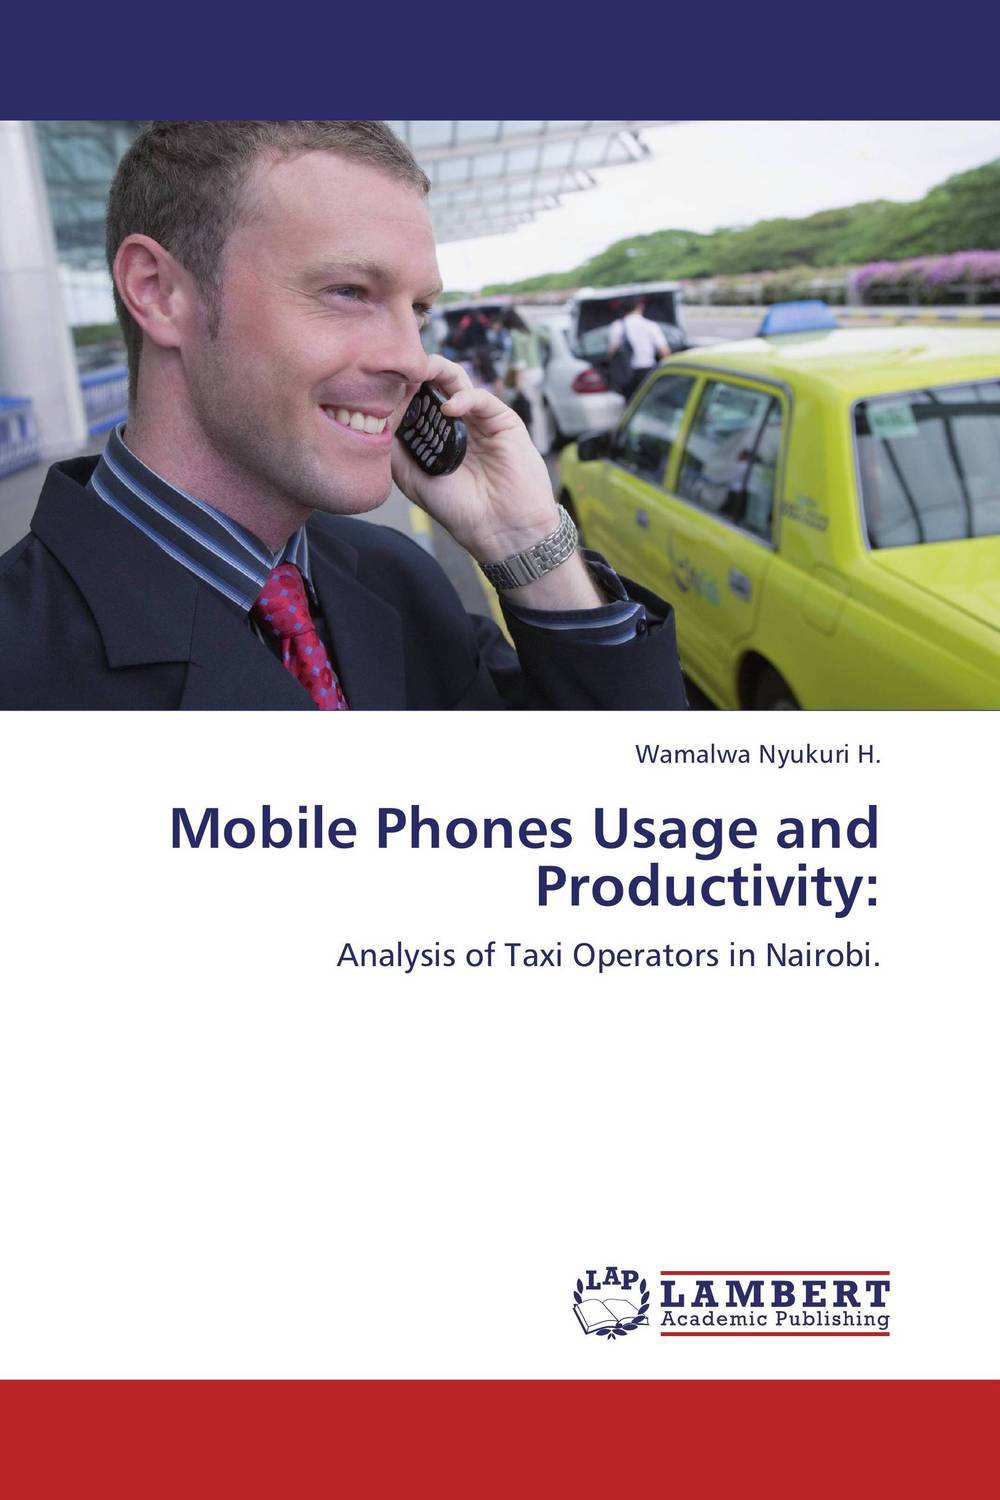 купить Mobile Phones Usage and Productivity: недорого